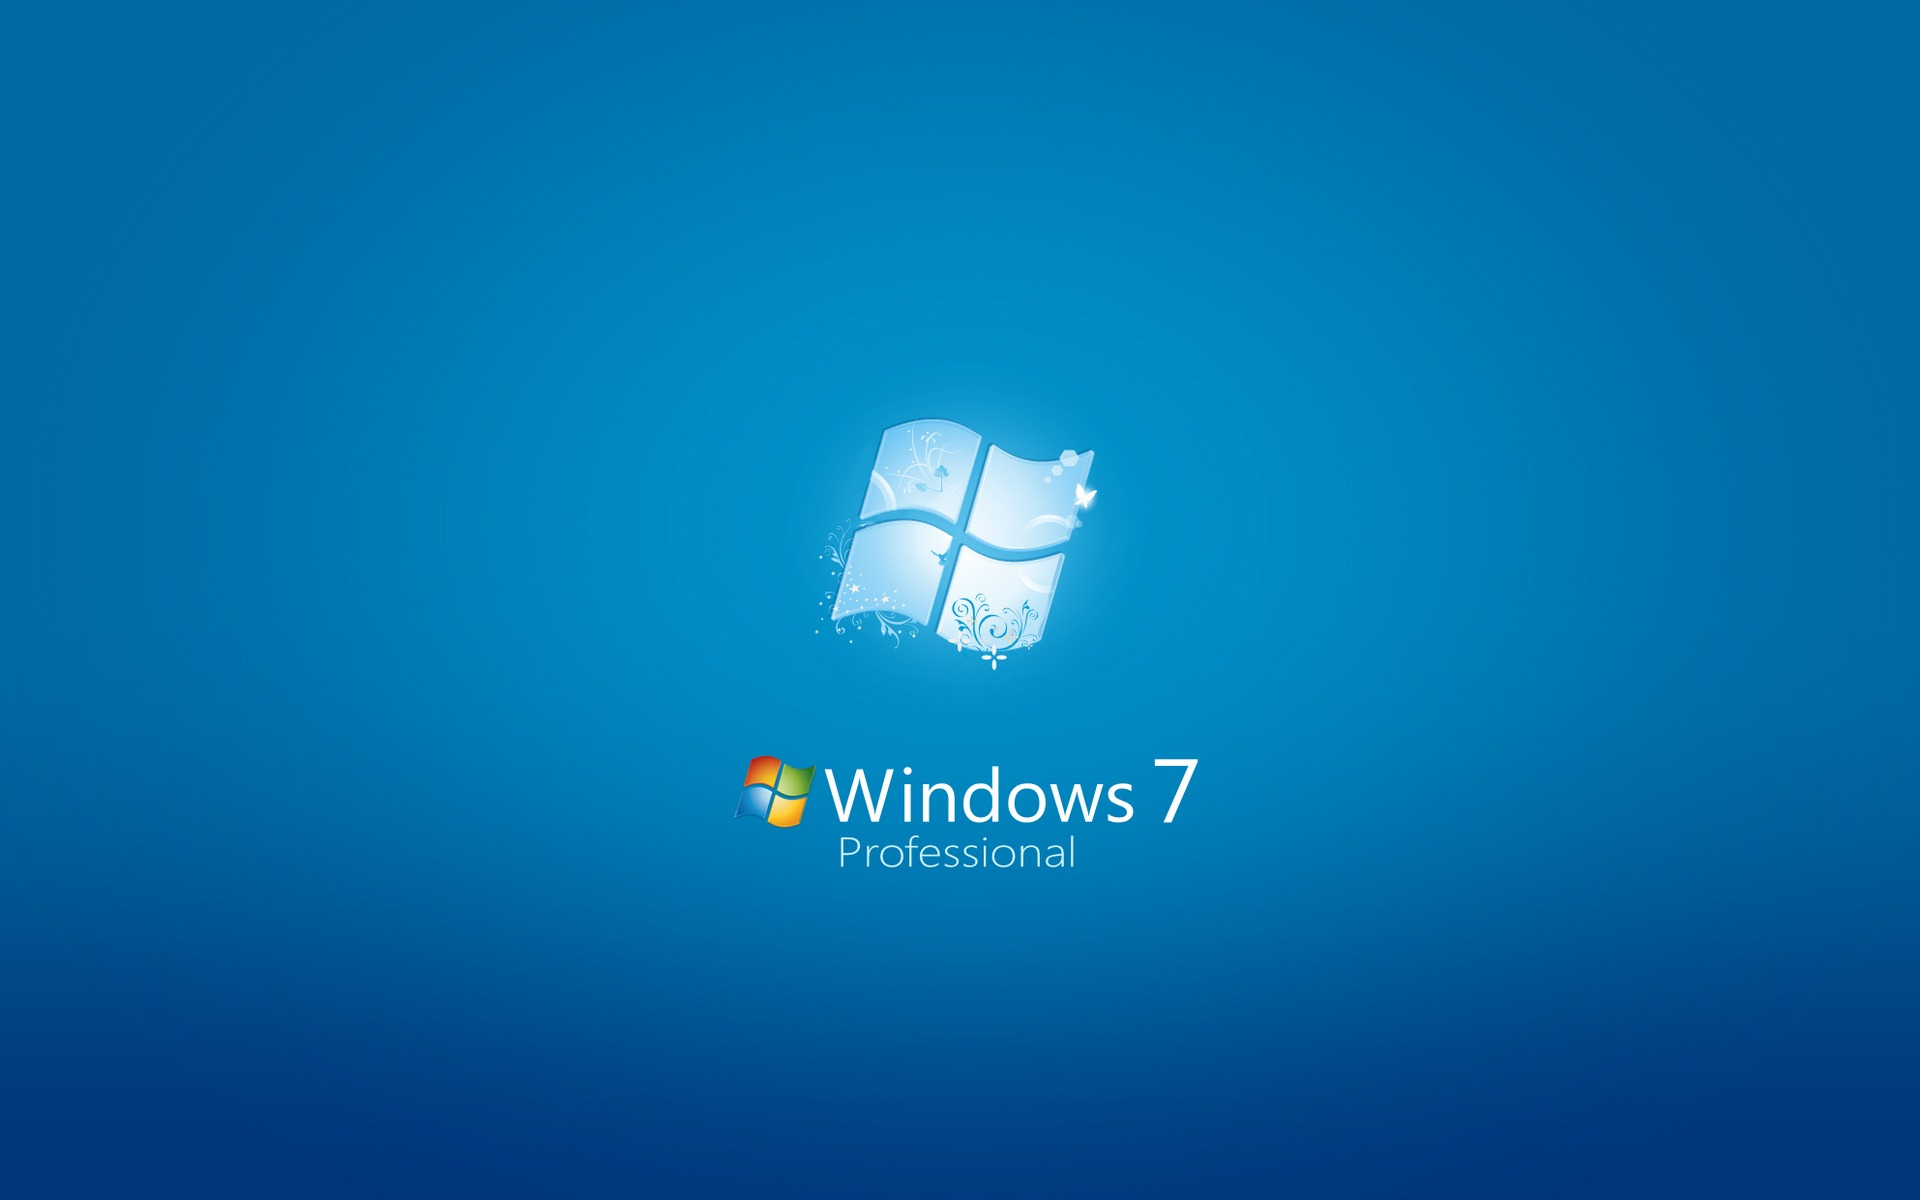 Windows 7 Professional682521689 - Windows 7 Professional - Windows, Professional, nVIDIA